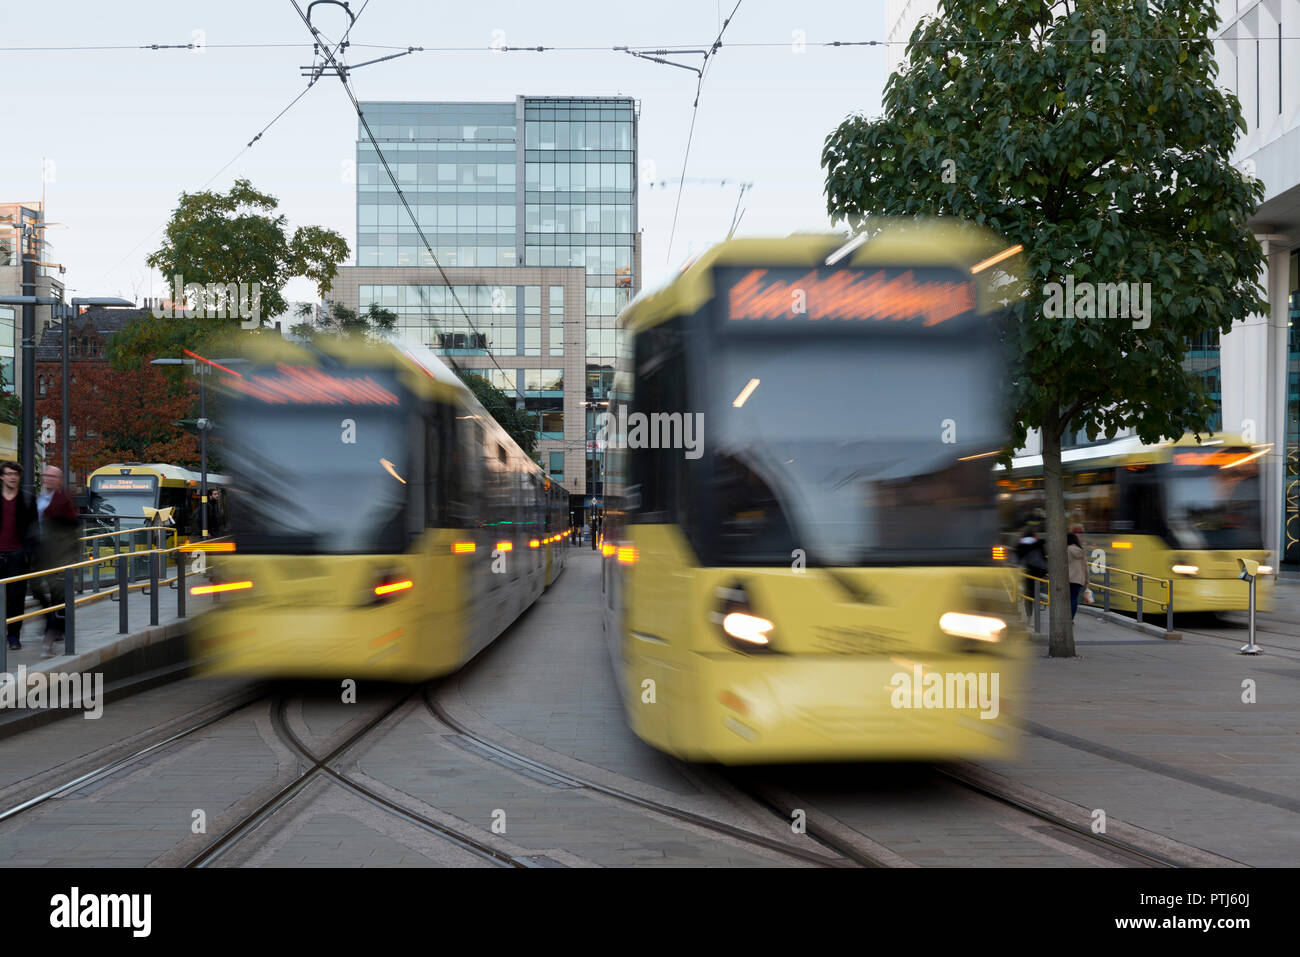 Three Metrolink trams depart St Peter's square stop in Manchester city centre, UK. - Stock Image